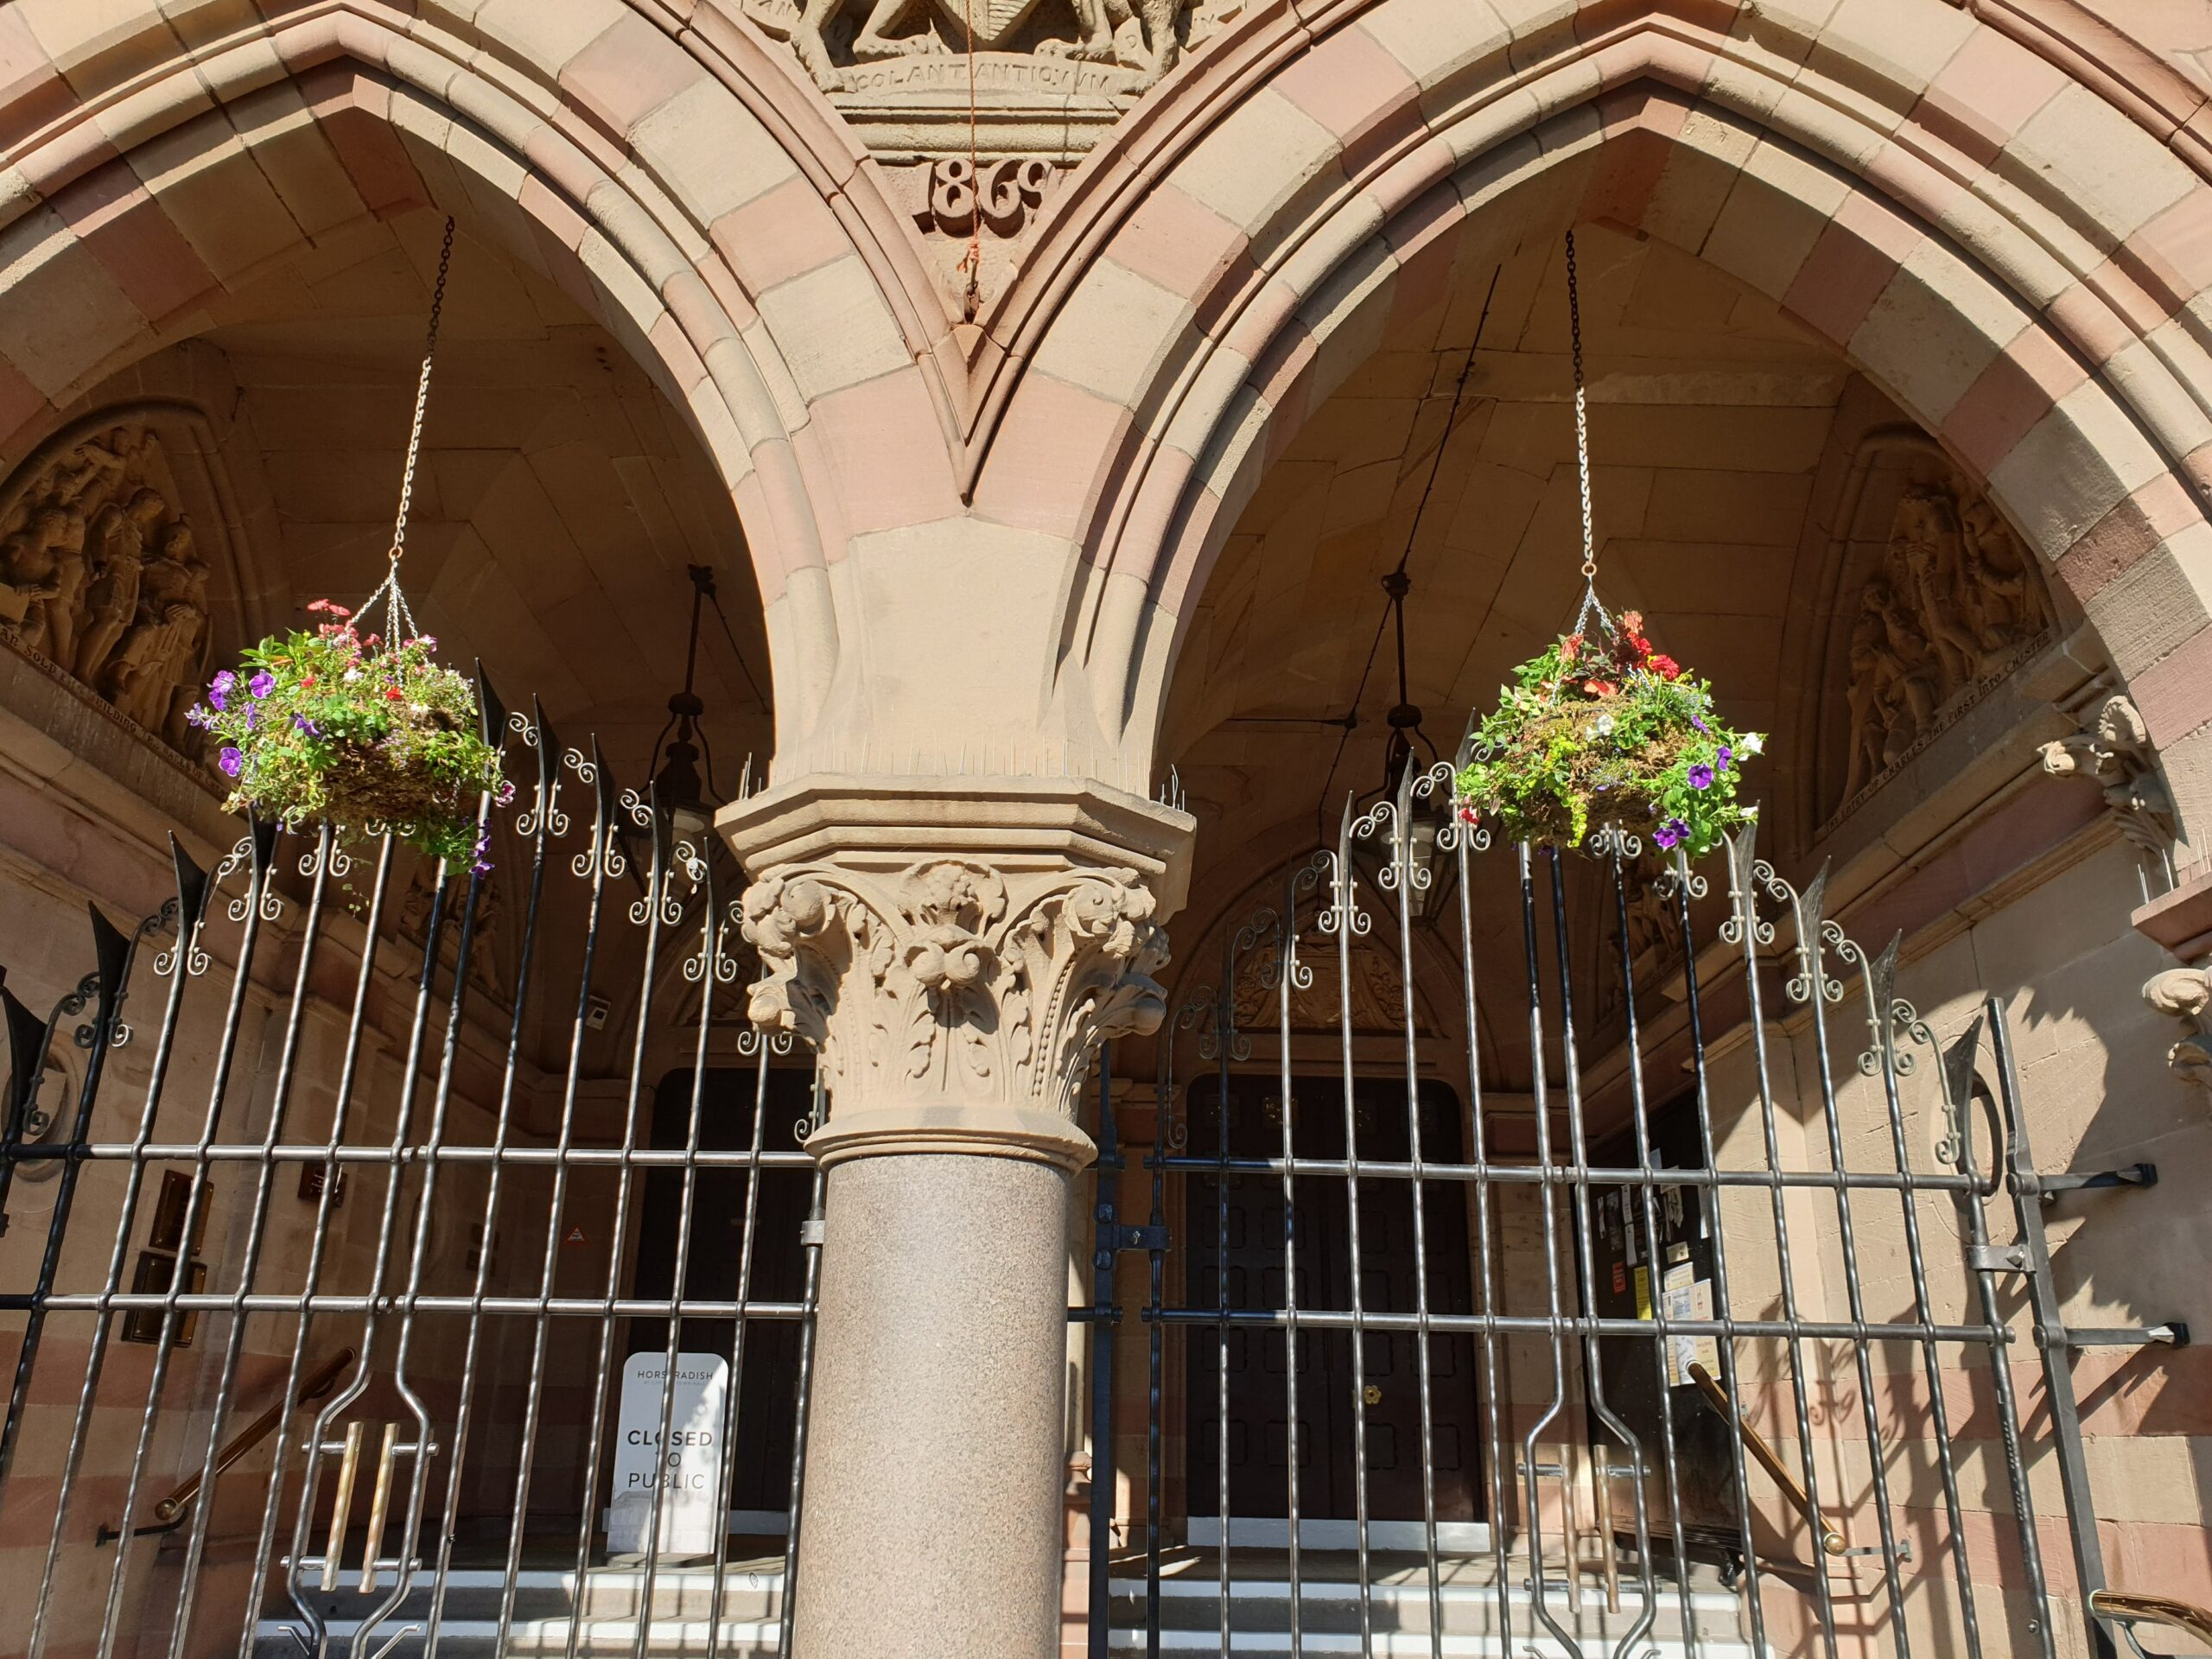 Hanging baskets in the entrance of town hall